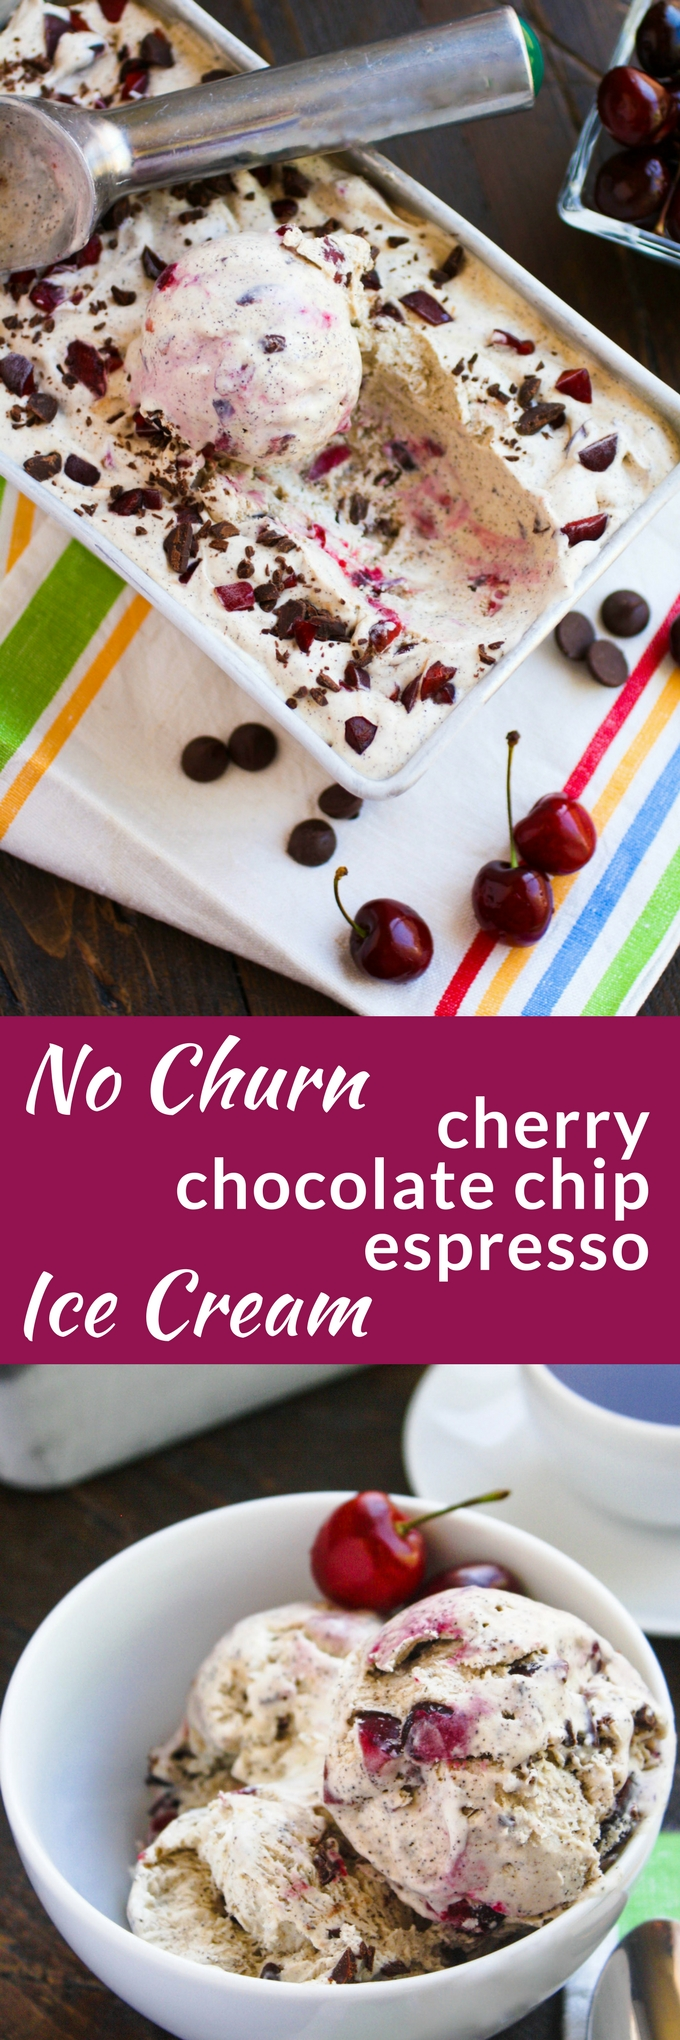 No Churn Cherry Chocolate Chip Espresso Ice Cream is a fun and delicious ice cream dessert! You'll want to make a batch soon -- it's so easy to make!